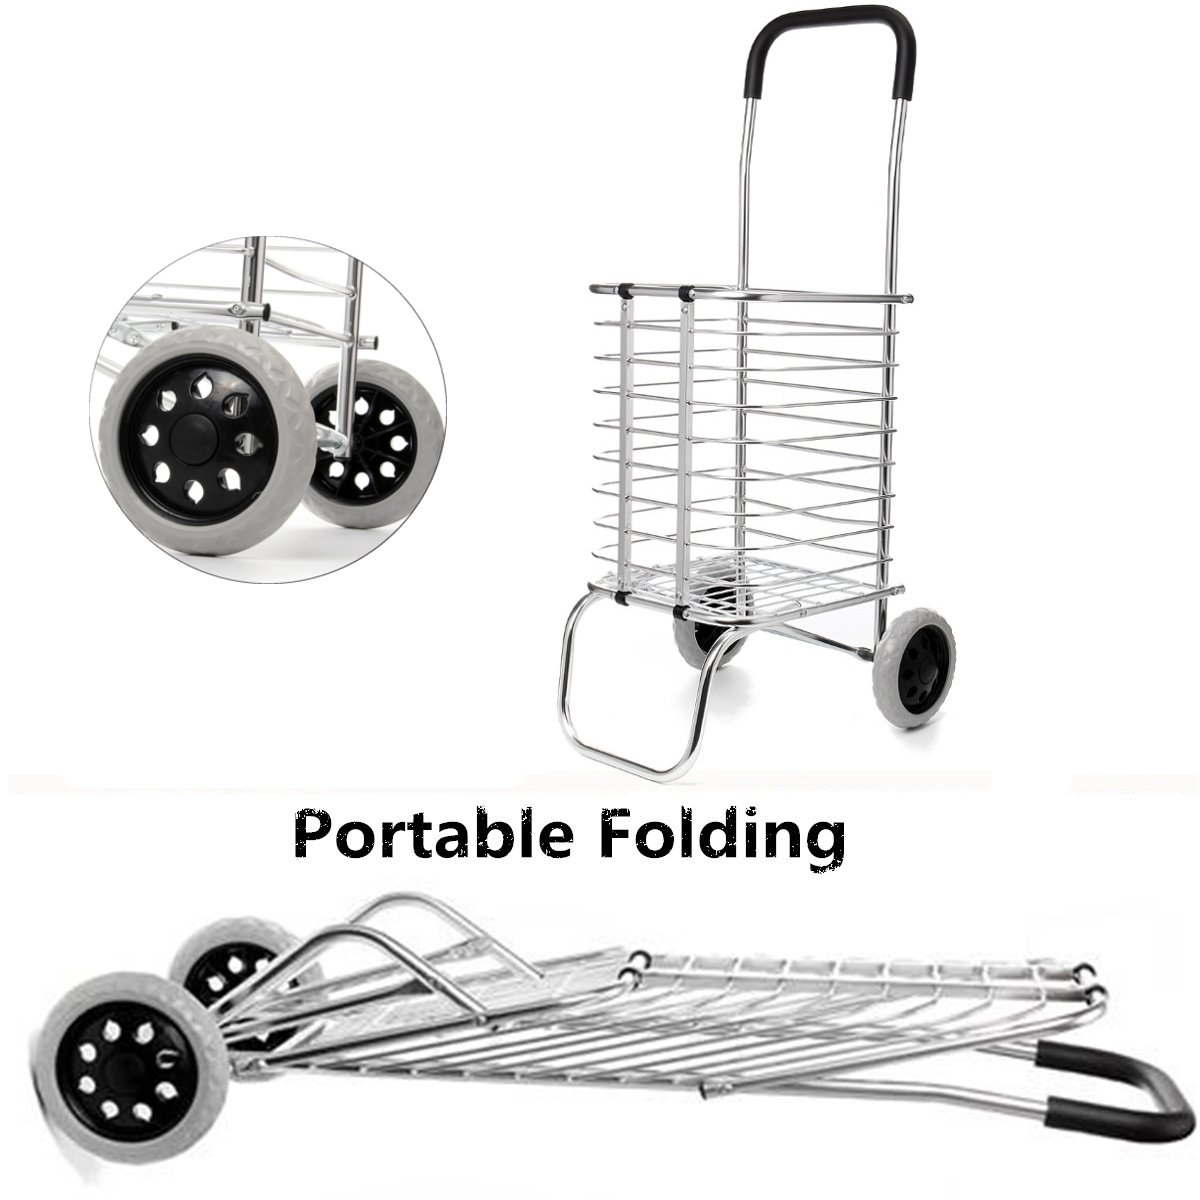 2 Wheel Kitchen Trolley Aluminum Folding Portable Shopping Market Grocery Basket Cart Trolley Quality Aluminum Frame Bold